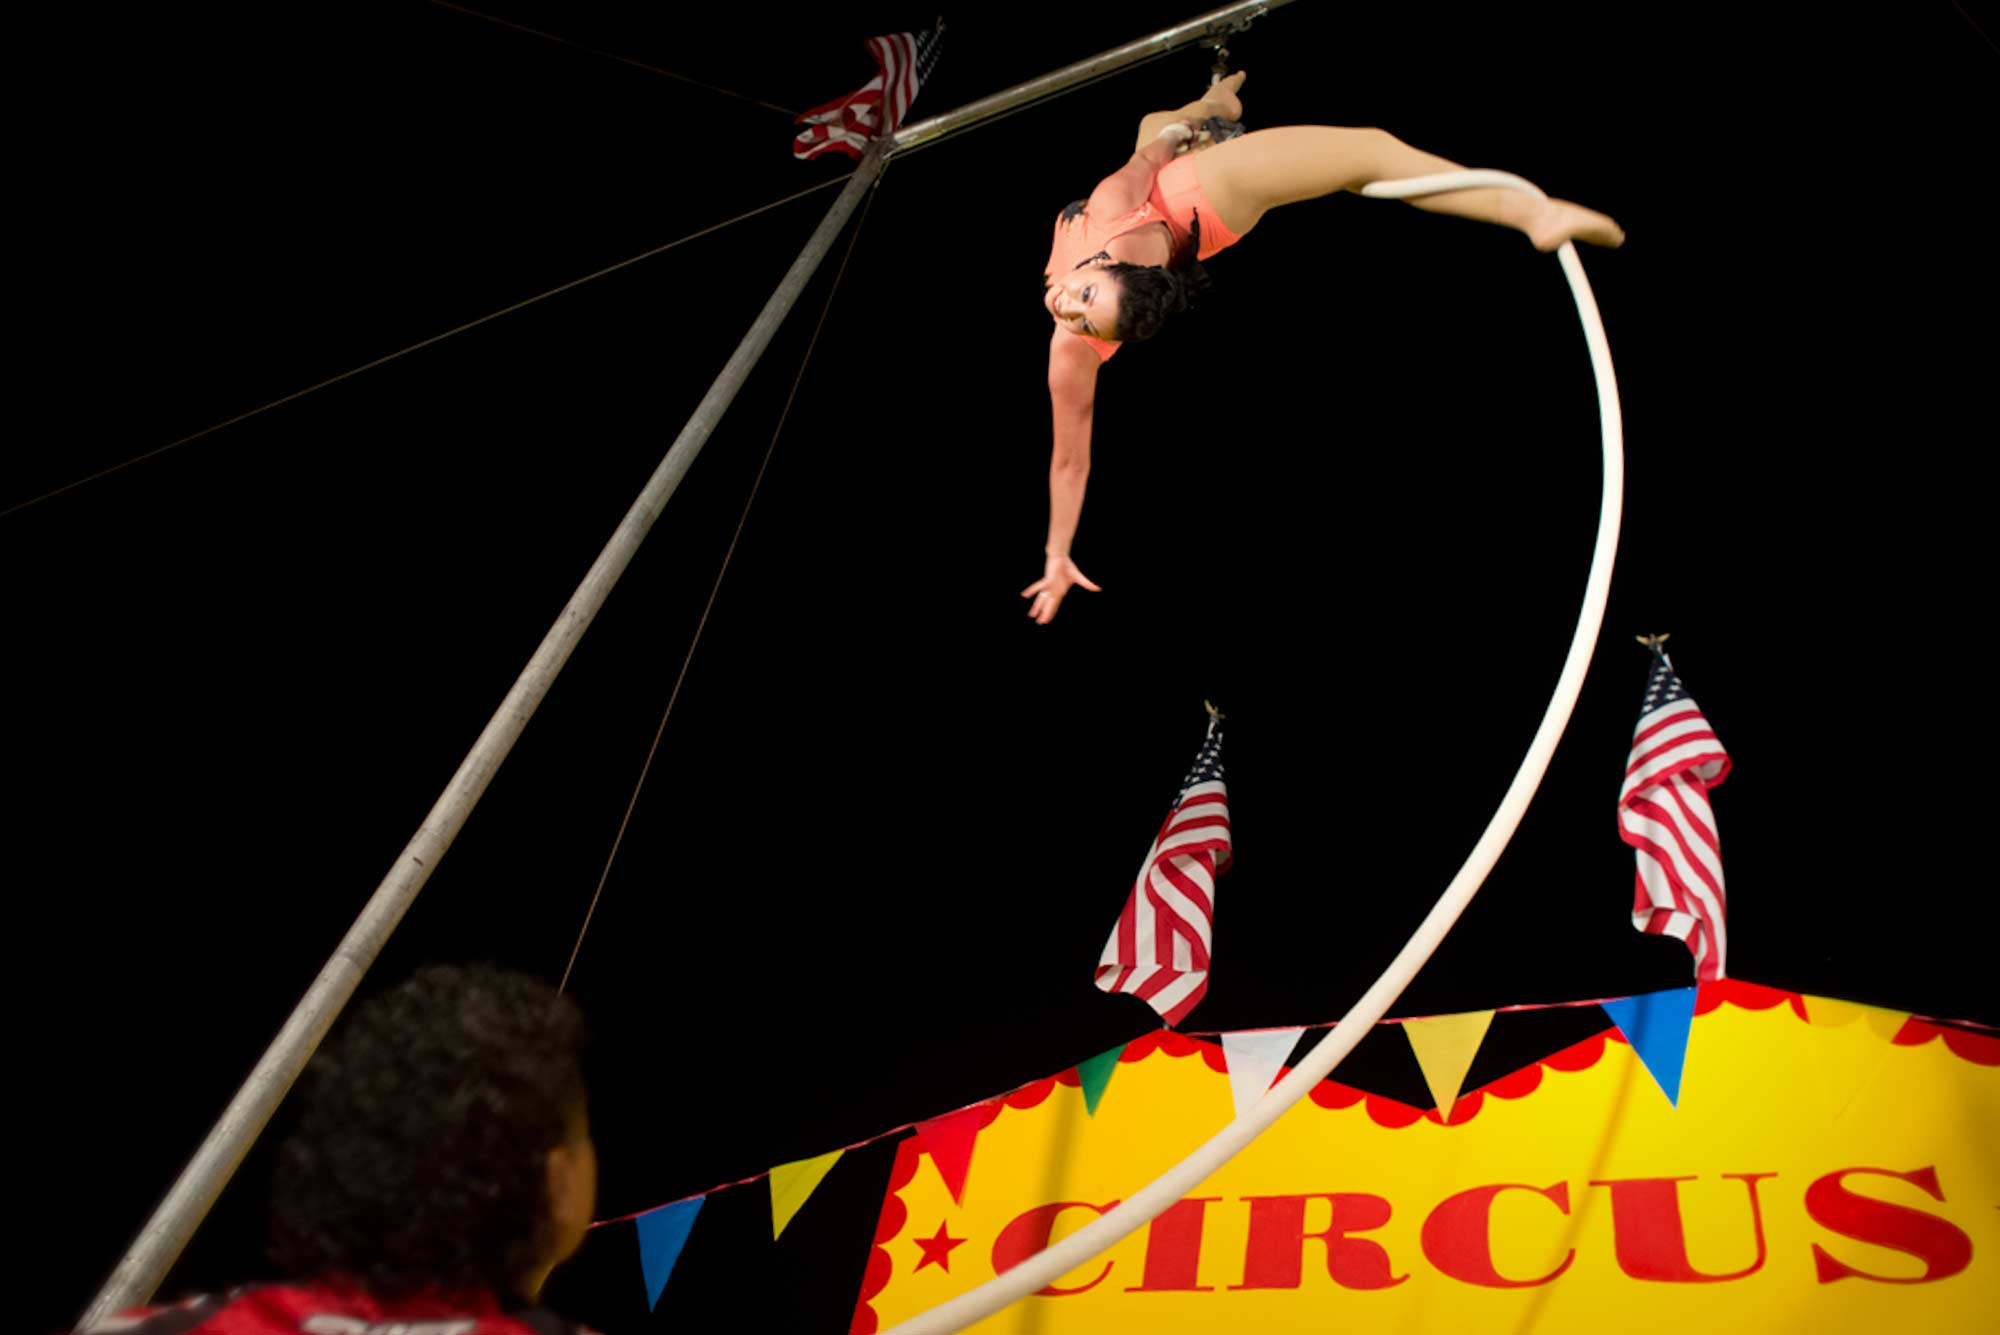 Liza performs aerial ballet during the final show of the night while Oscar controls the rope from below.